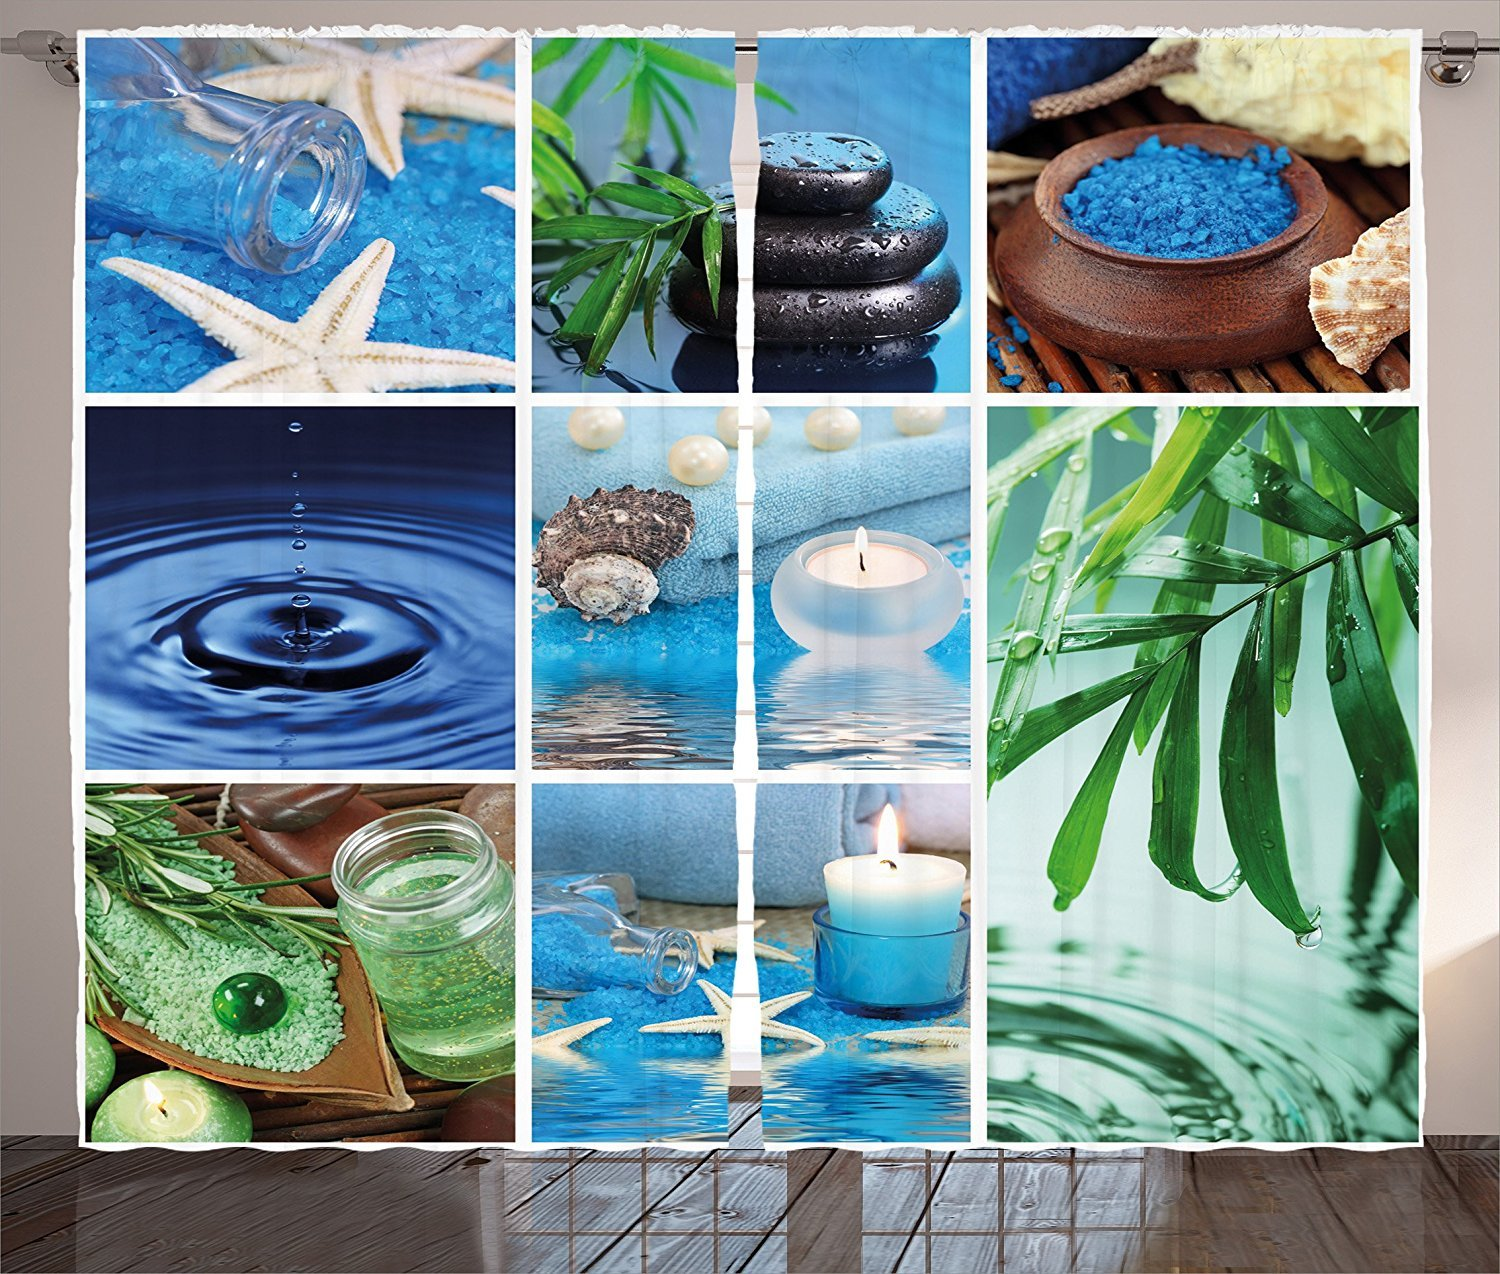 Spa Decor Curtains Ocean Theme Collage with Starfish Stone Botanic Plants Aqua and Candles Image Living Room Bedroom Window Drapes 2 Panel Set Blue and Green